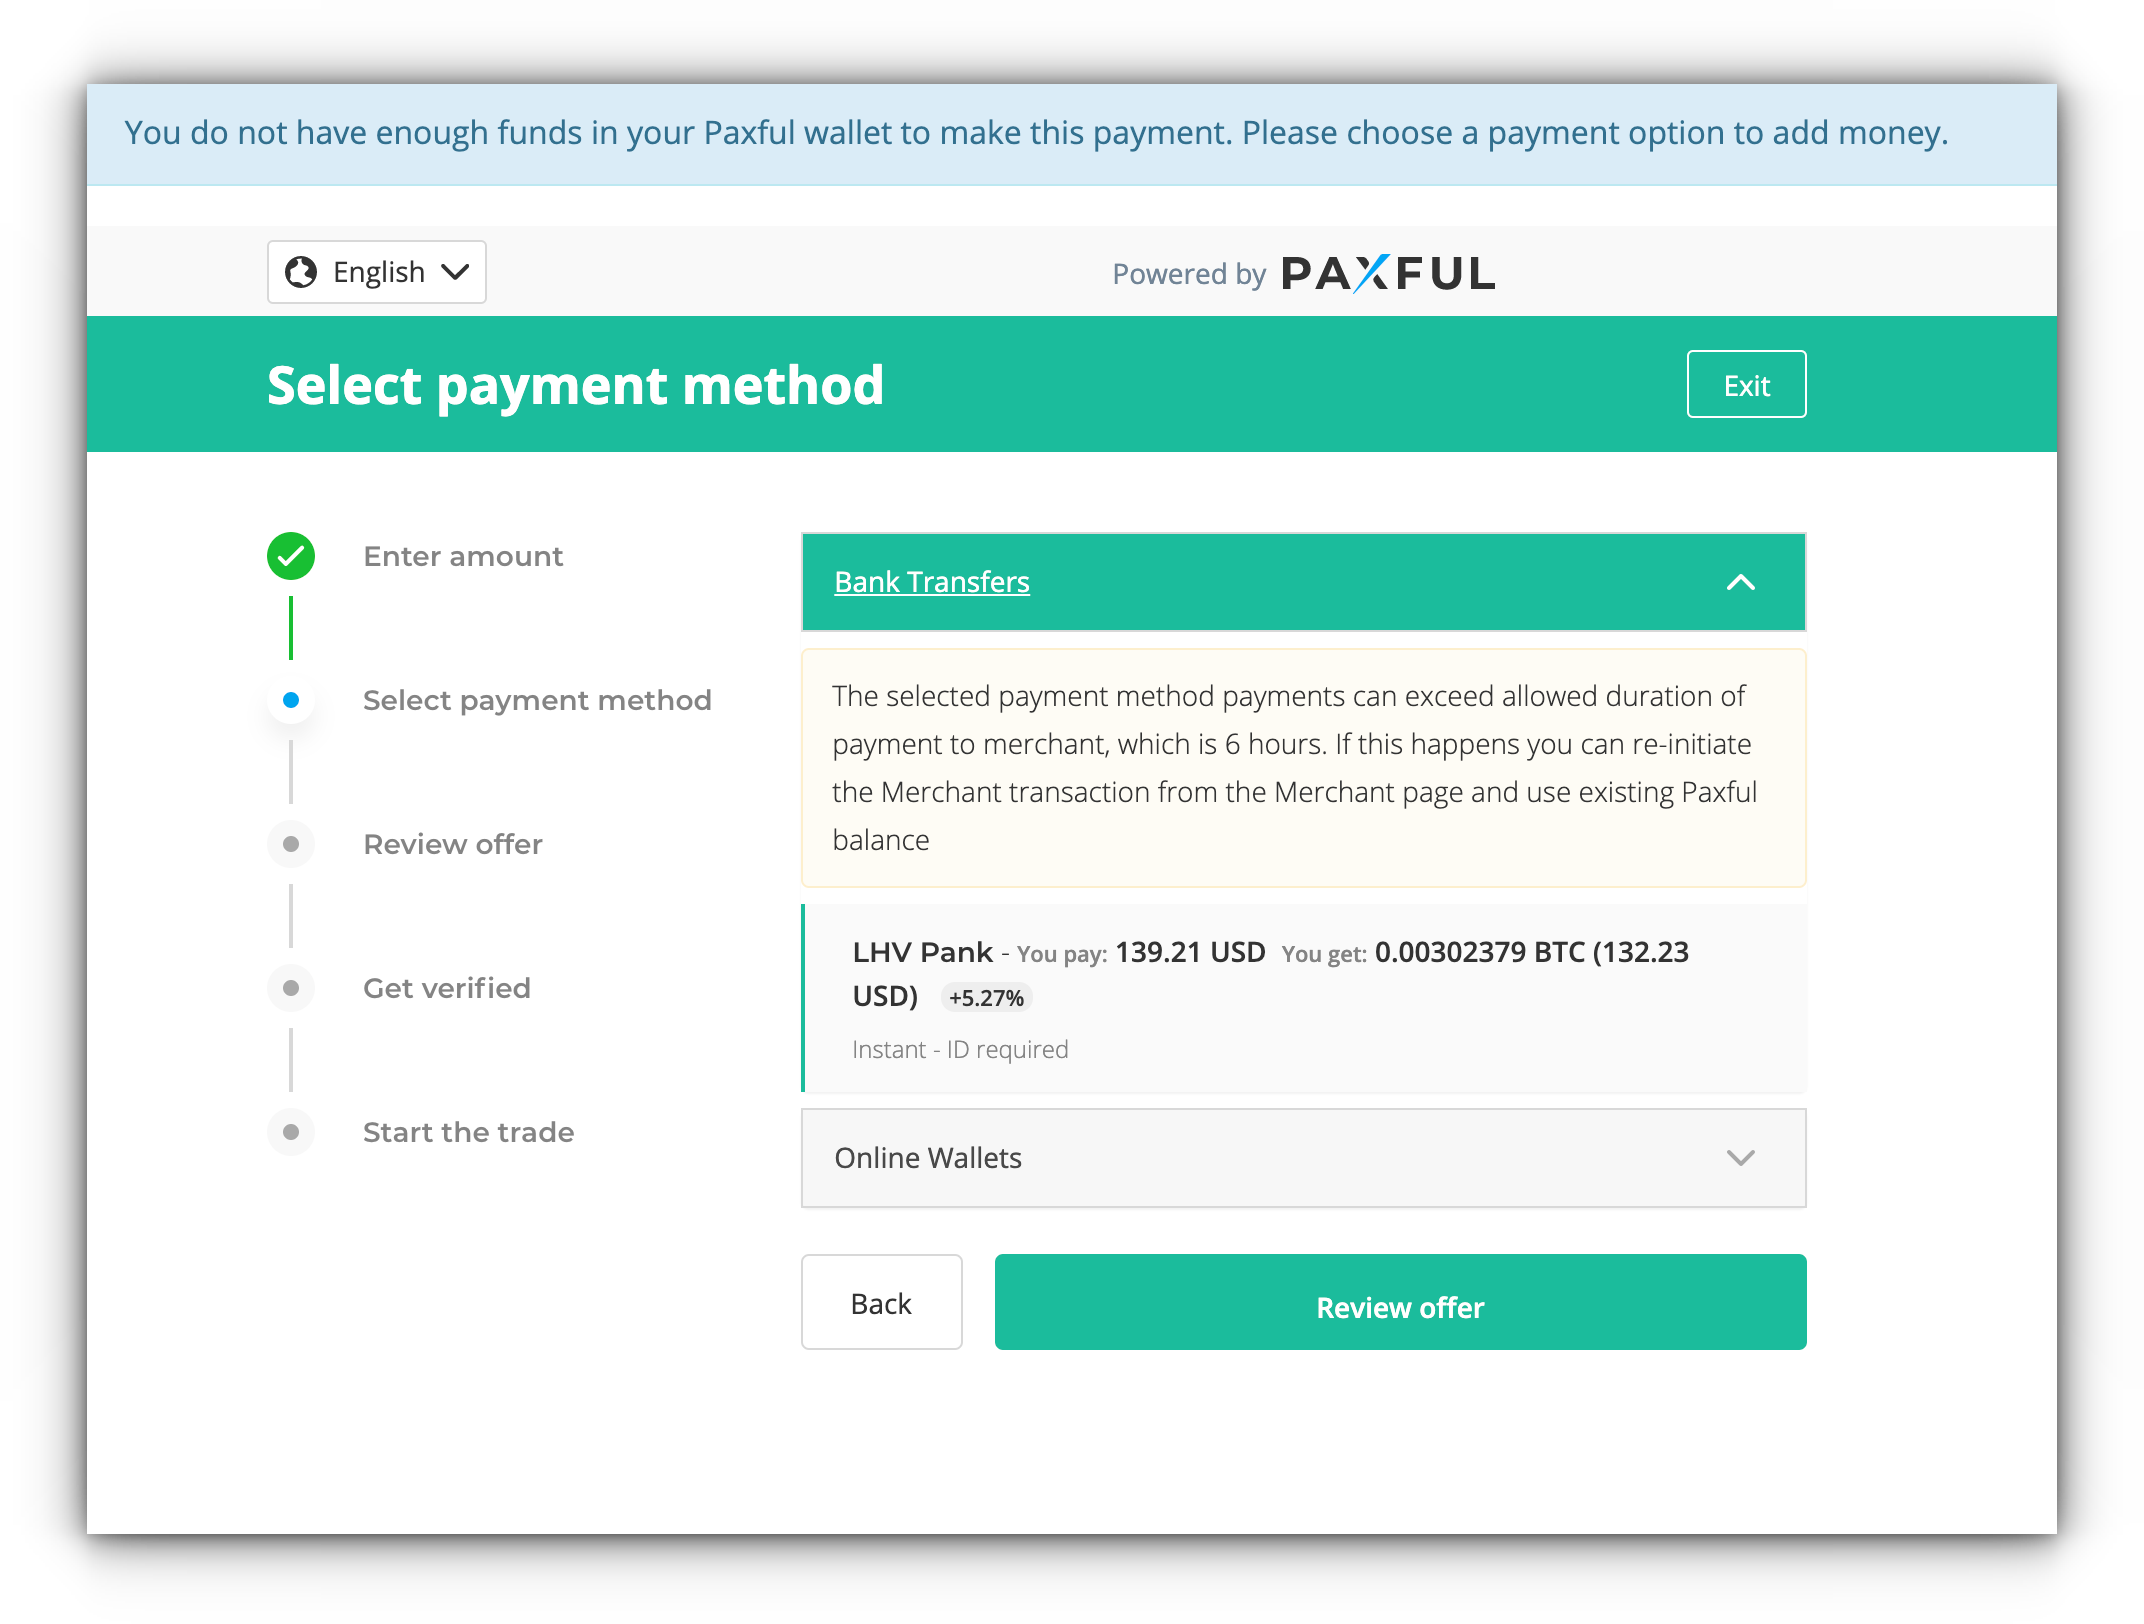 Paxful_Pay_New_User_Checkout_Step_6.png